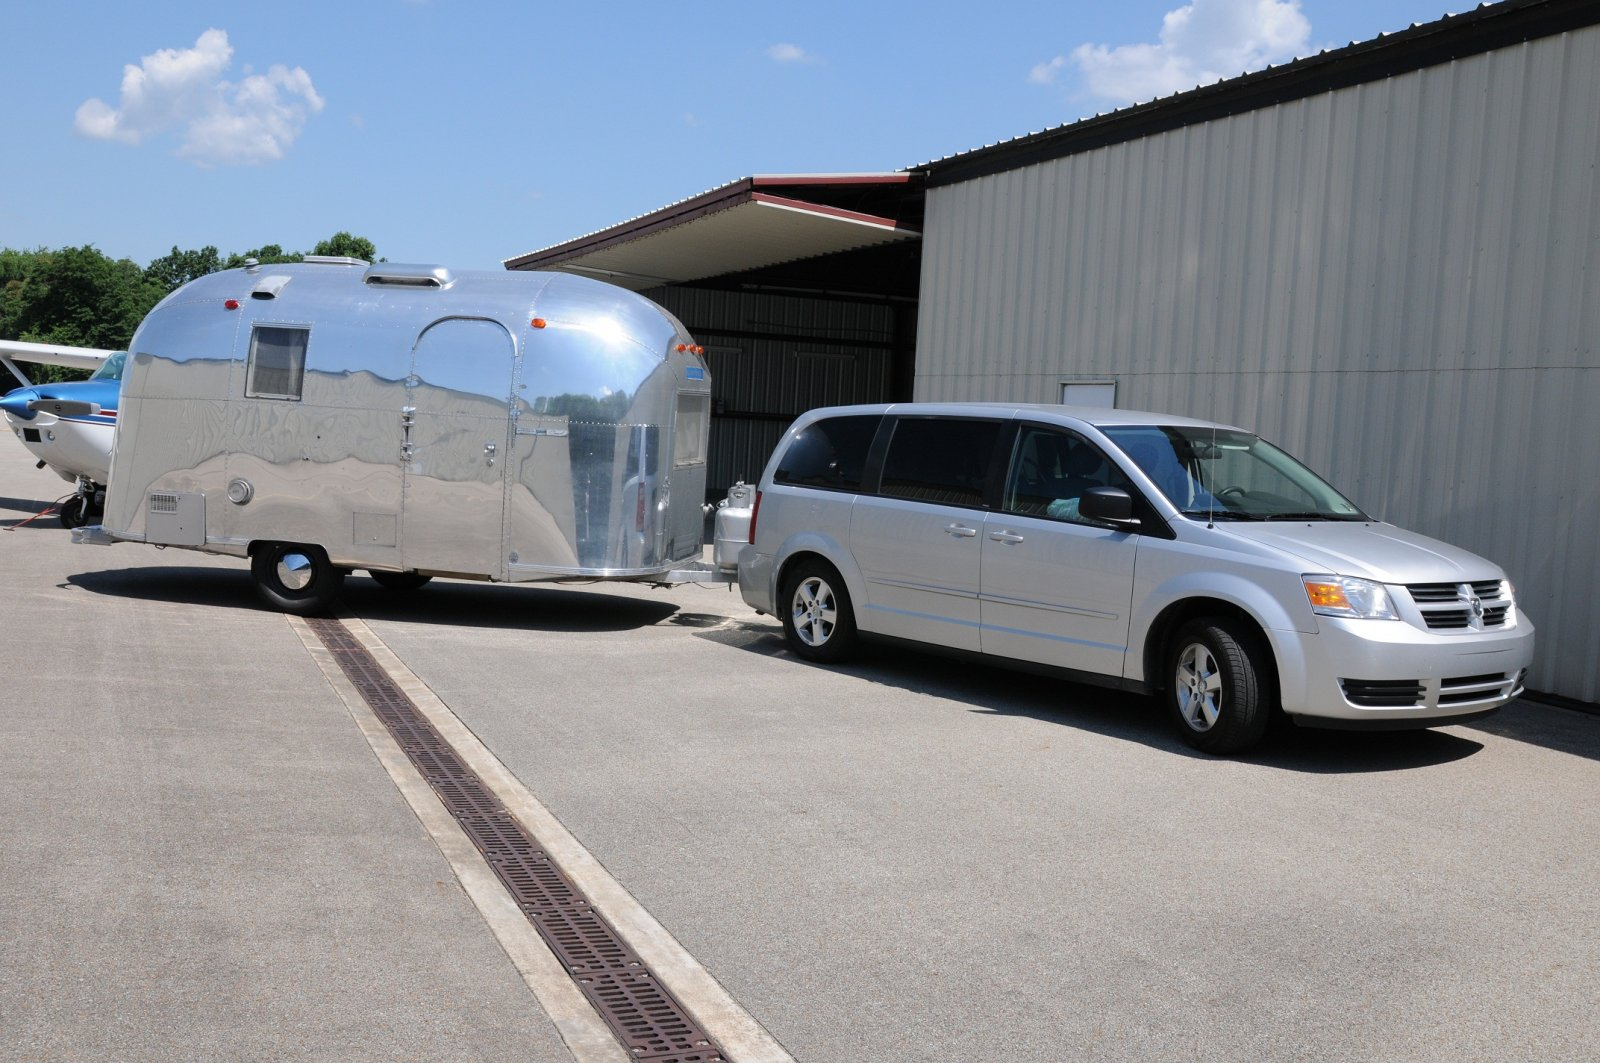 Click image for larger version  Name:AS and Caravan.jpg Views:130 Size:295.4 KB ID:163642